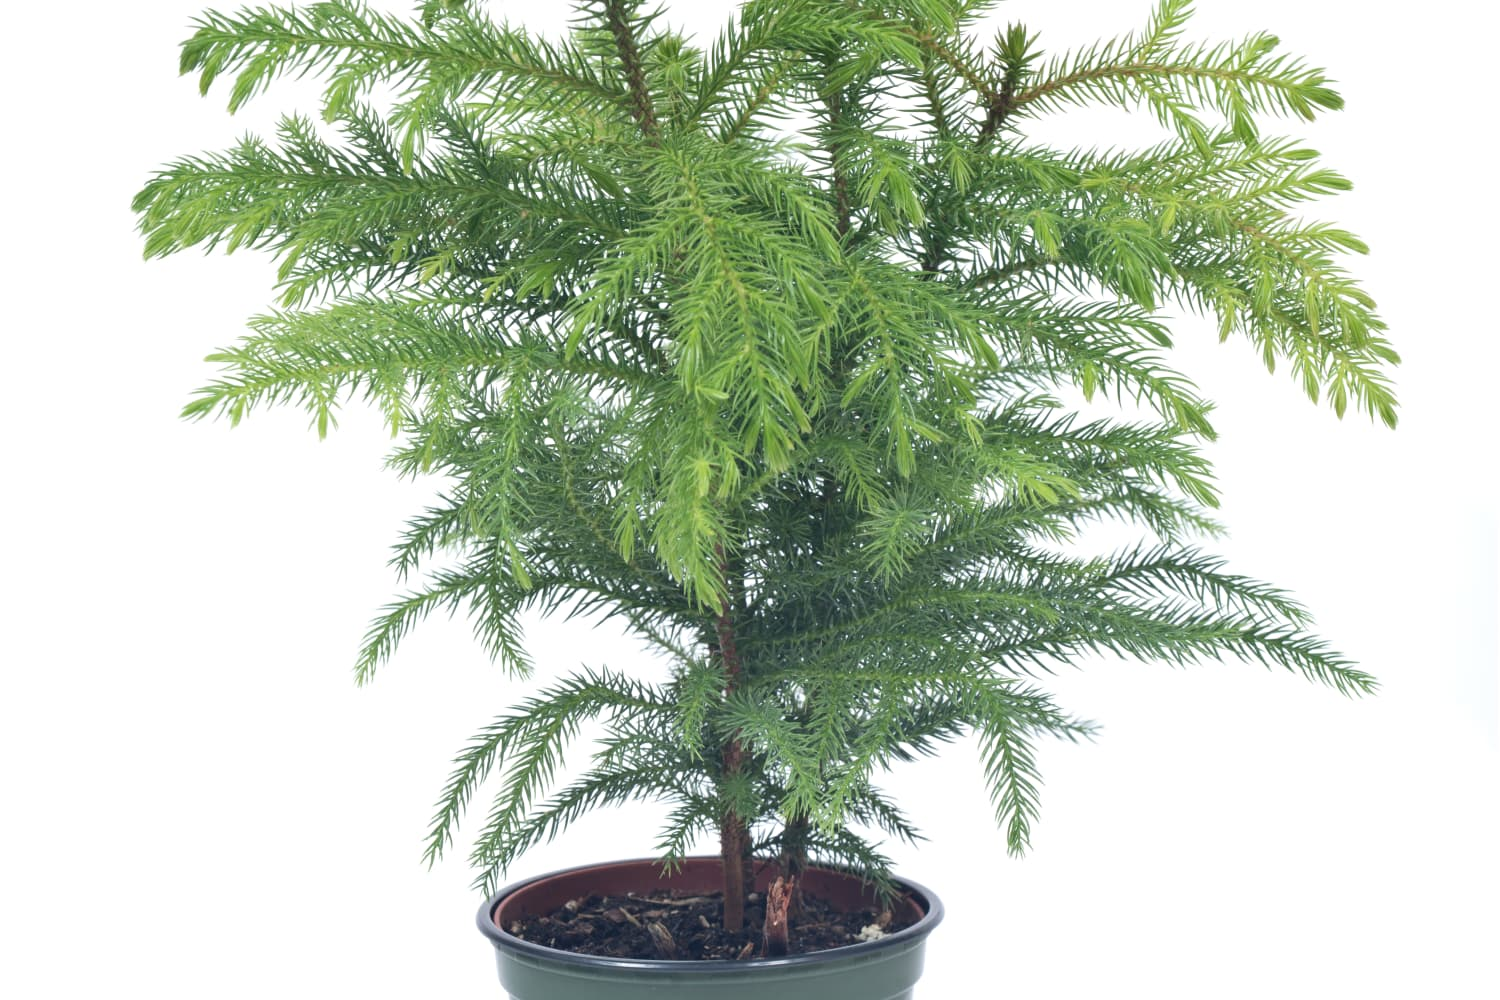 Norfolk Island Pine: Meet the New Darling of the Houseplant Squad